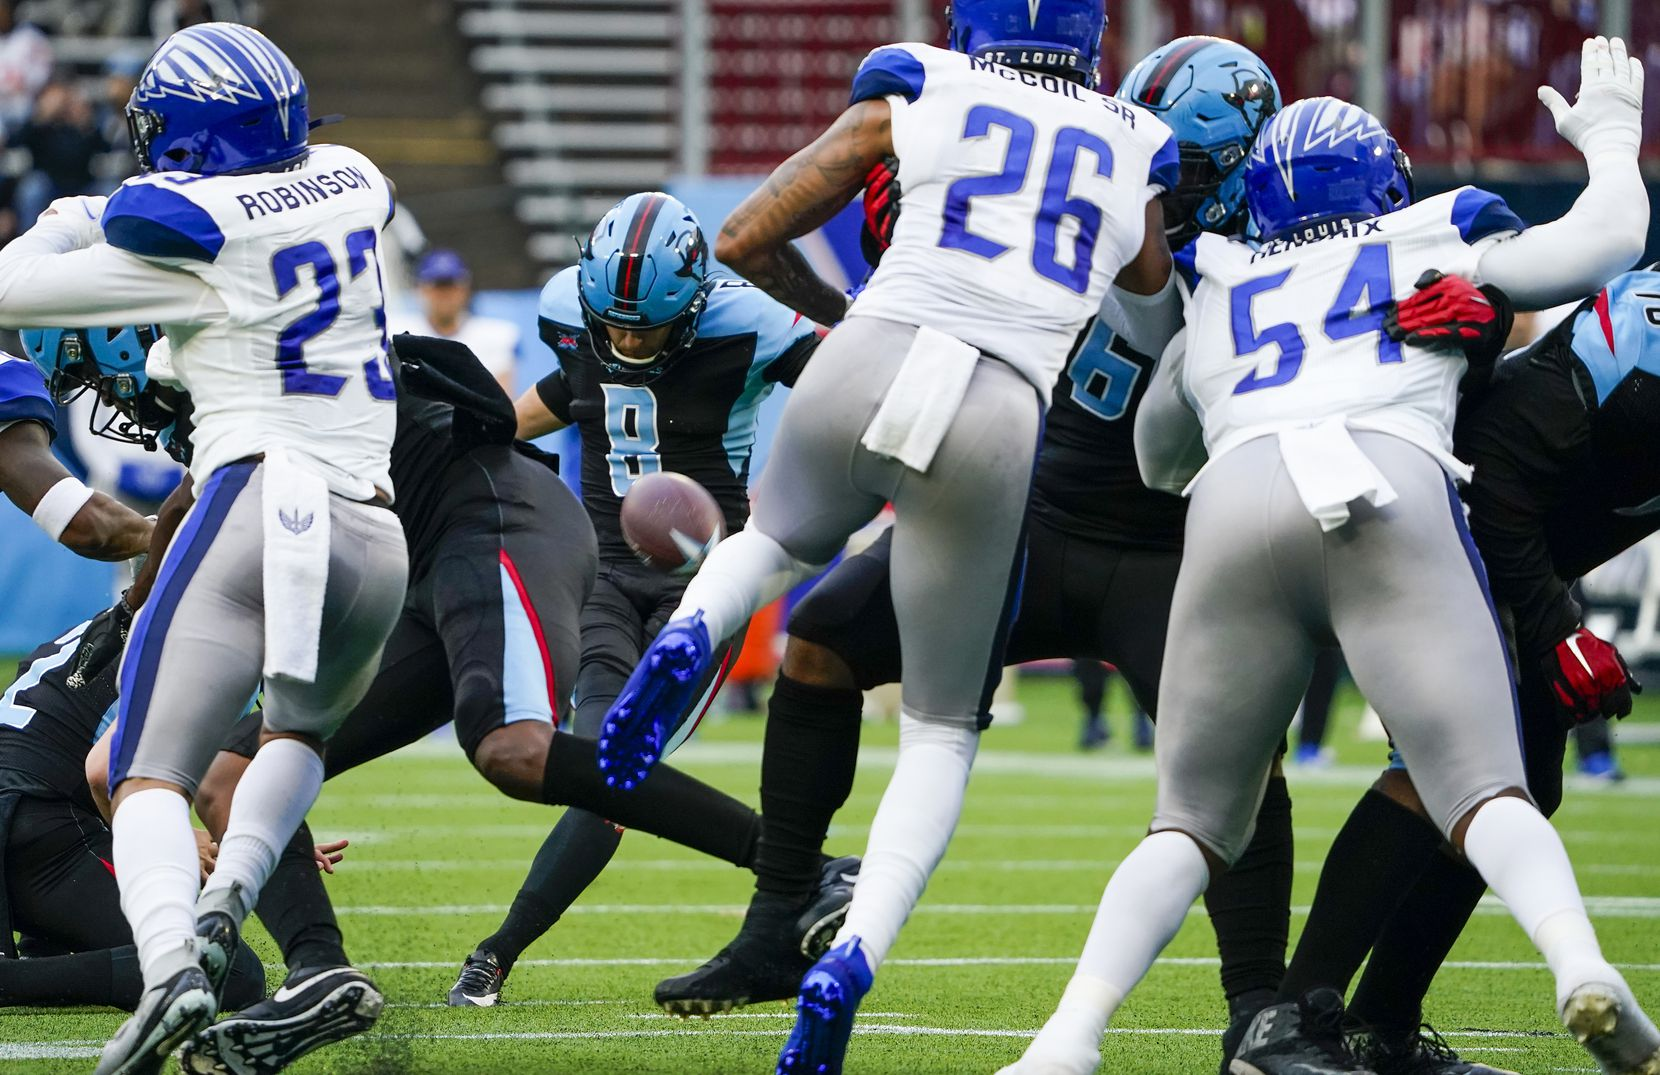 Dallas Renegades kicker Austin MacGinnis (8) connects on a 32-yard field goal for the first points in franchise history during the teamÕs inaugural XFL football game against the St. Louis Battlehawks at Globe Life Park on Sunday, Feb. 9, 2020, in Arlington.